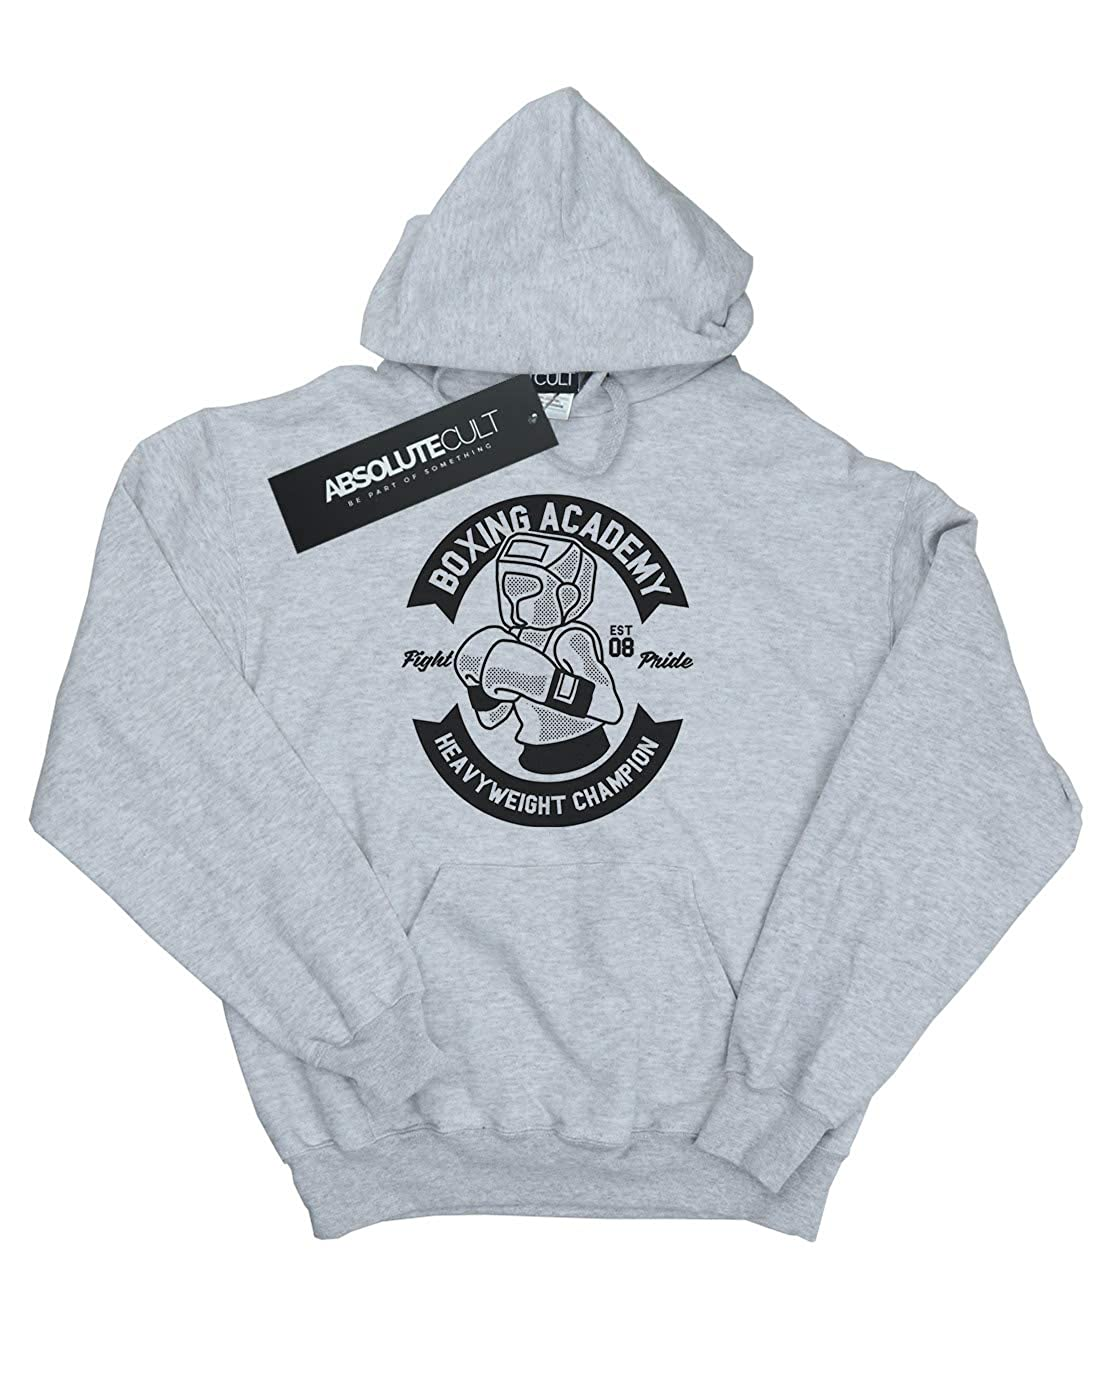 Absolute Cult Drewbacca Girls Boxing Academy Hoodie